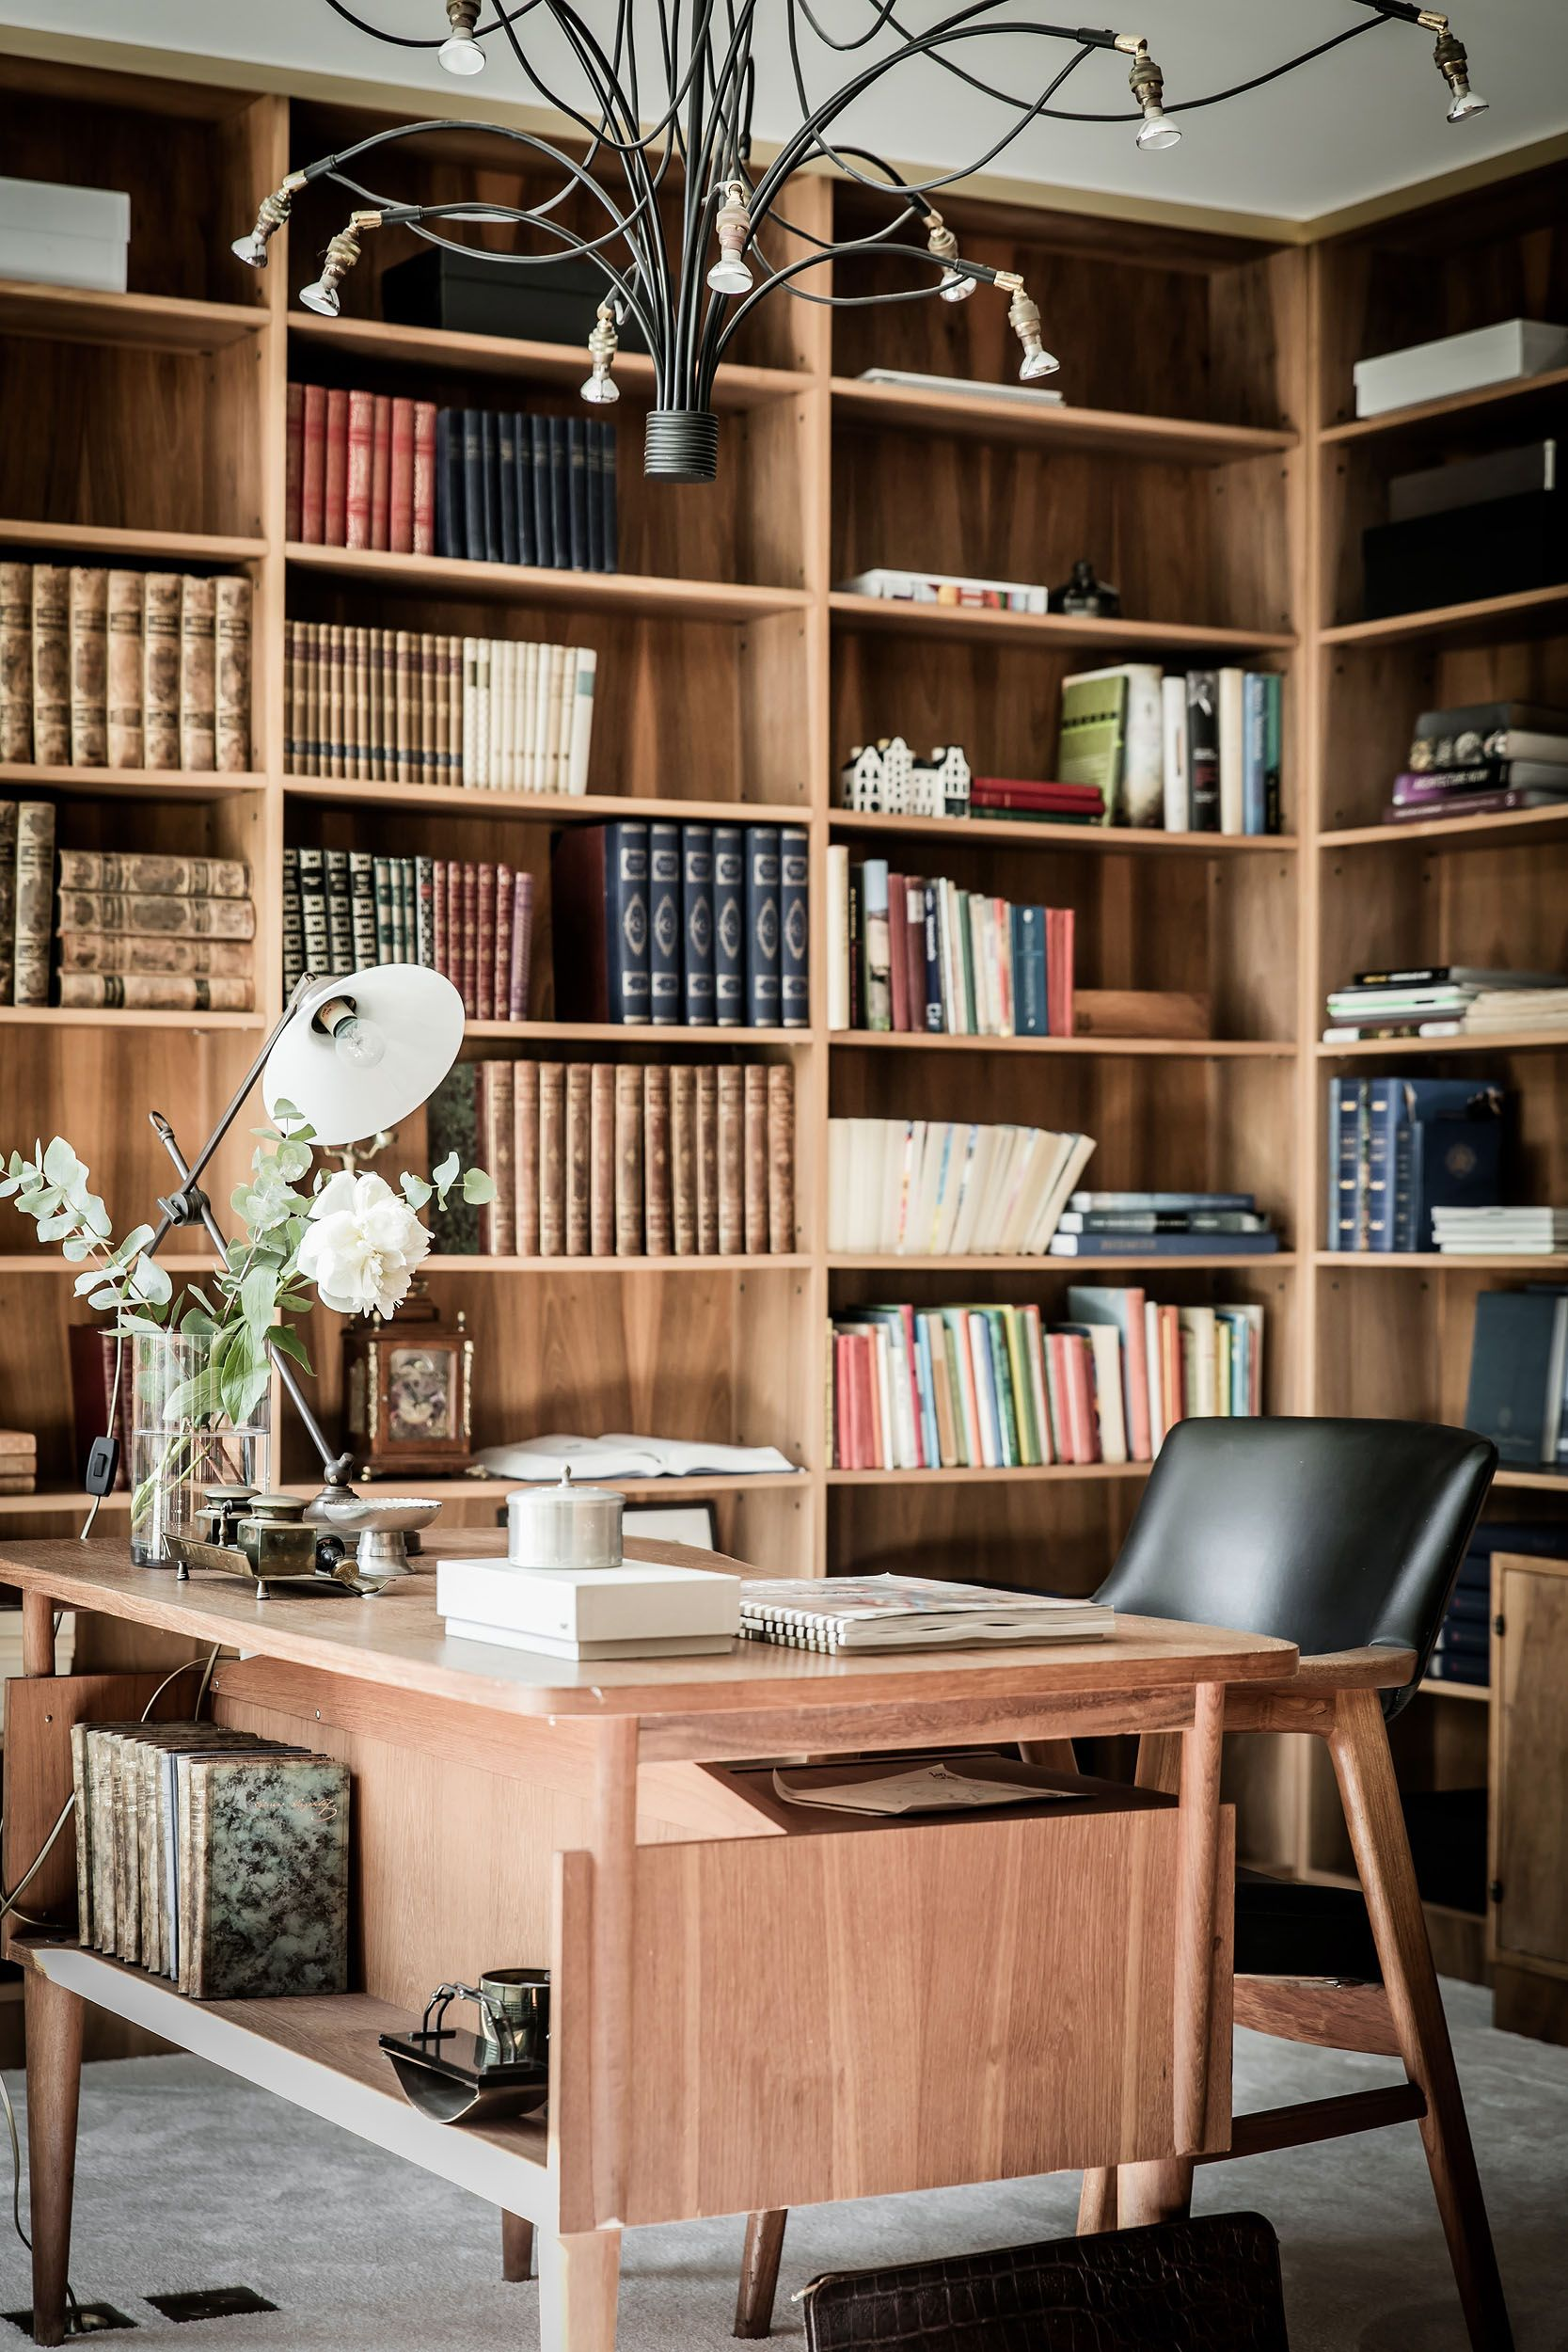 study room, seamless grey floor, wooden table, wooden chair with black leather seating, wooden built in shelves, chandelier,